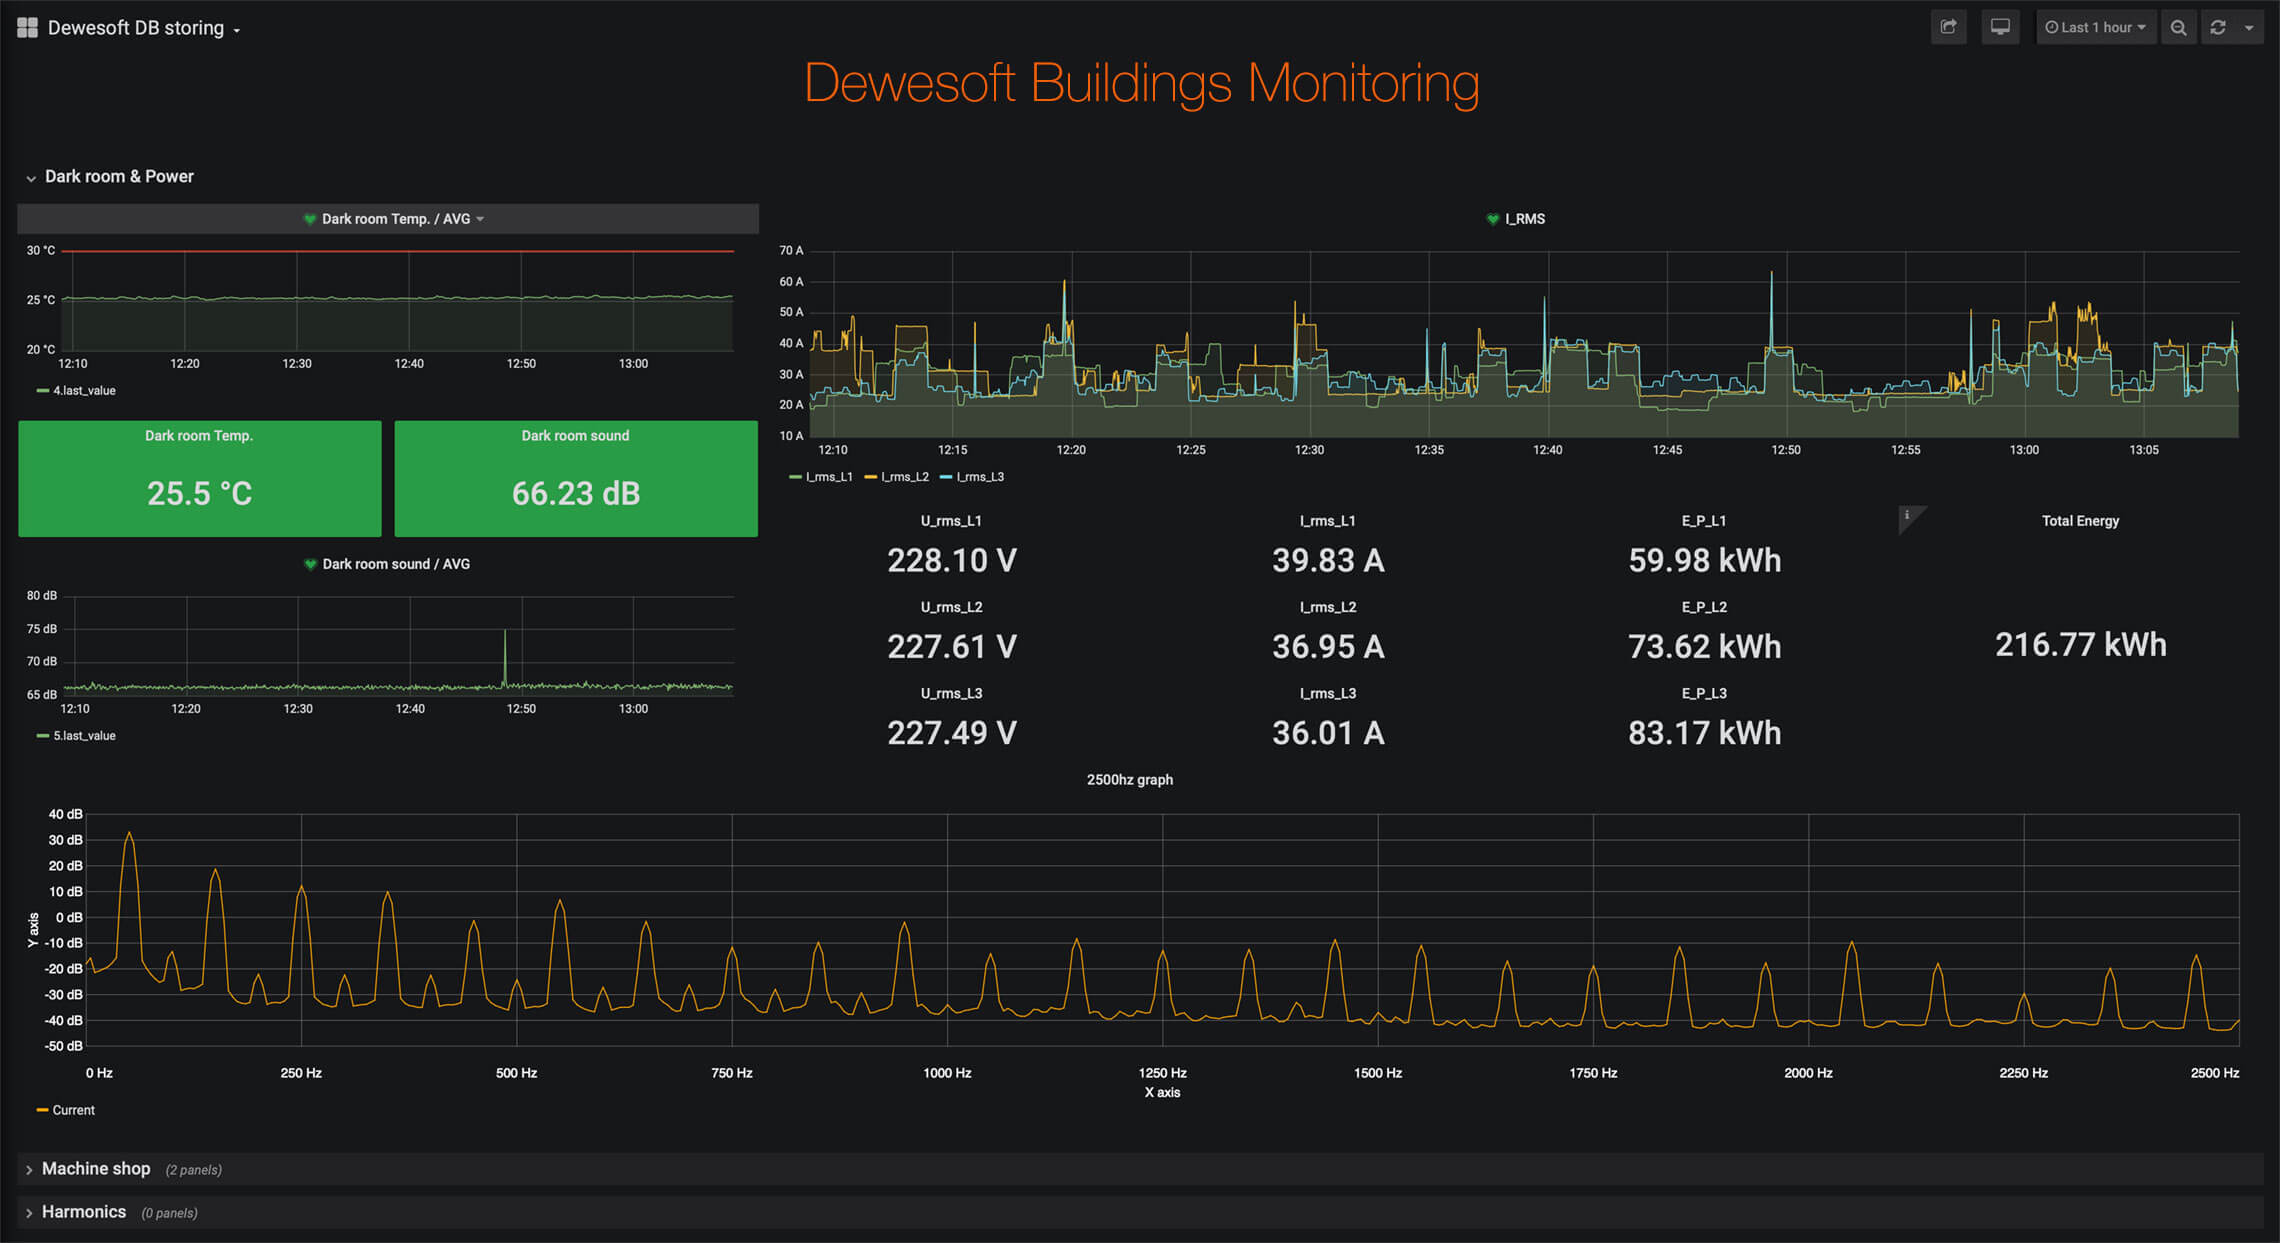 Monitoring solutions from Dewesoft